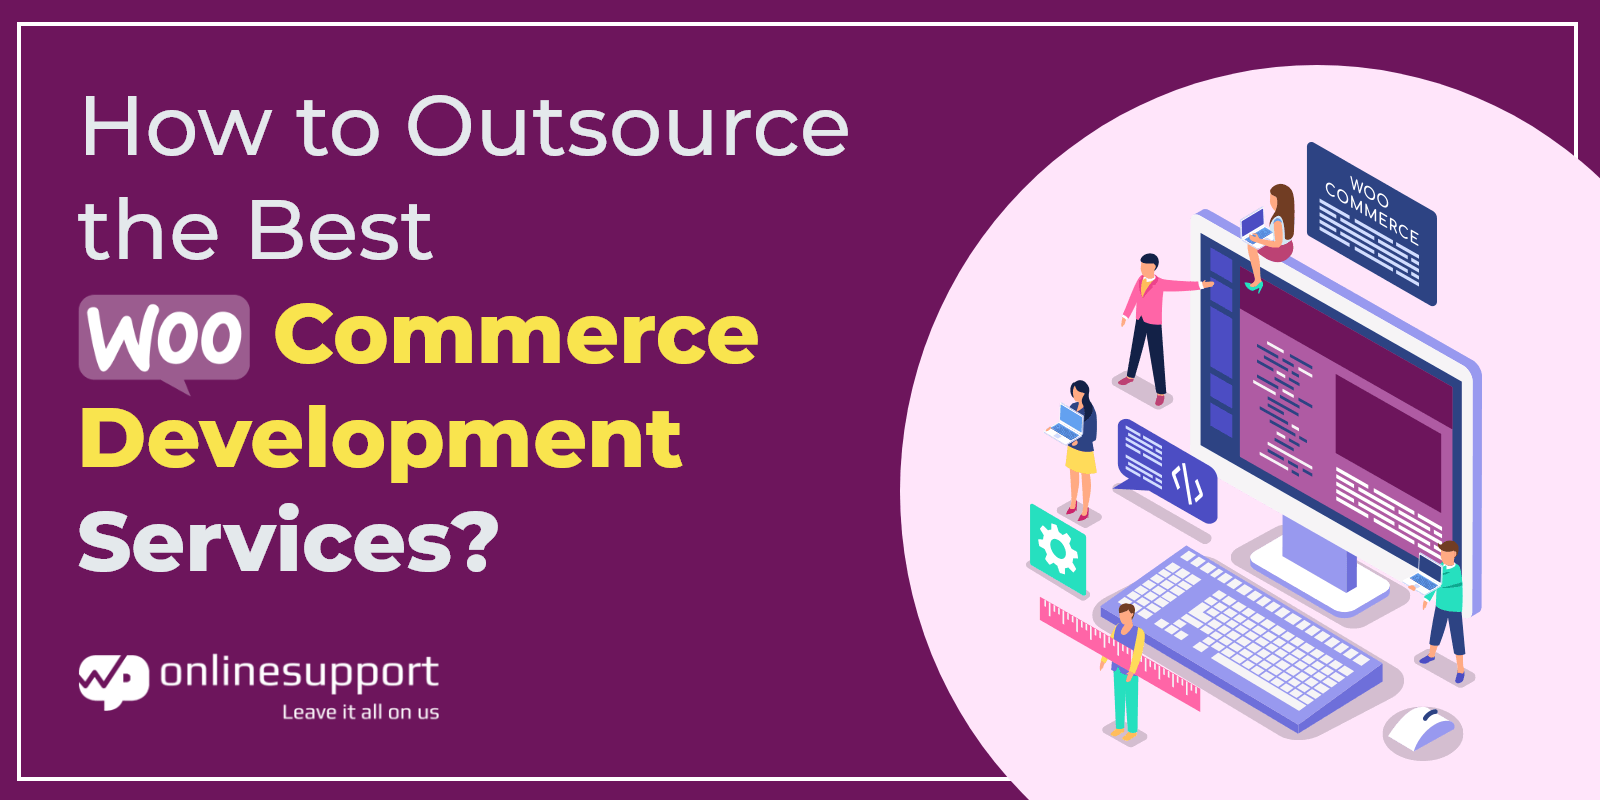 How to Outsource the Best WooCommerce Development Services?